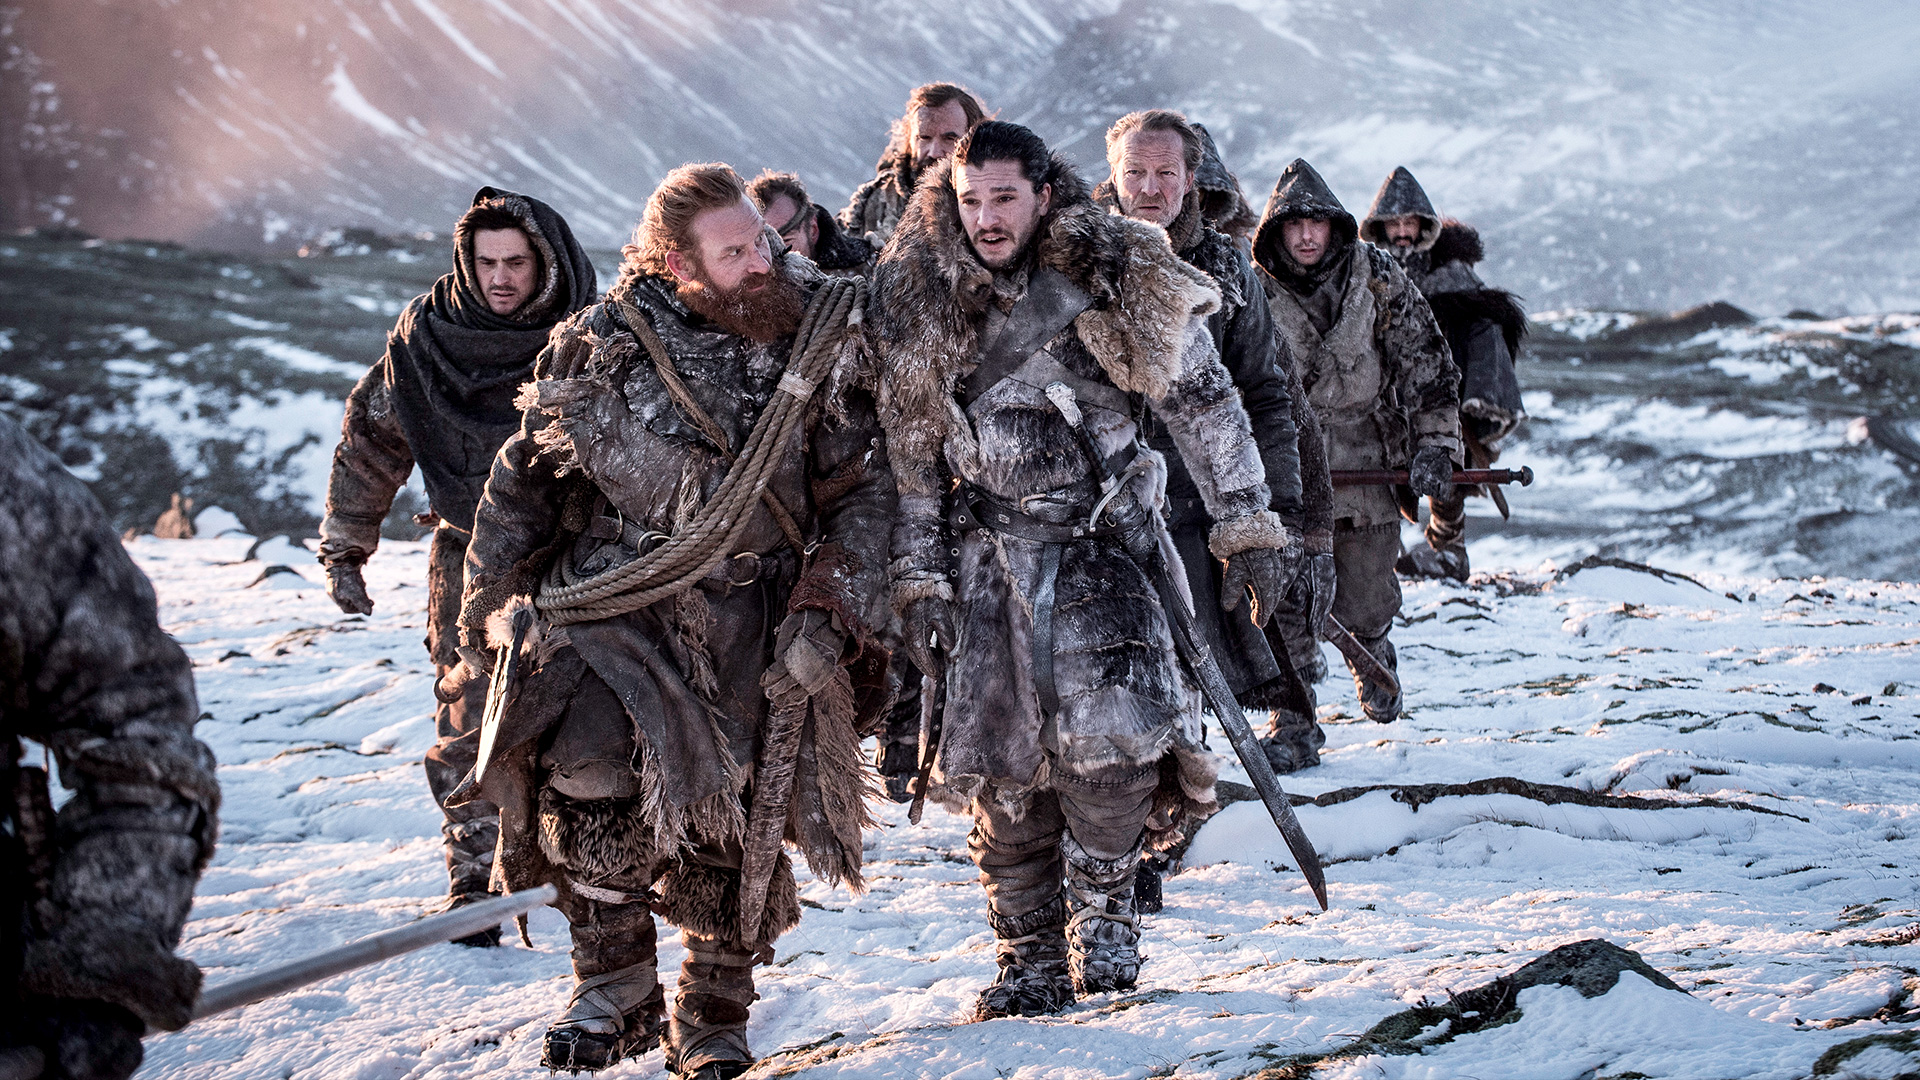 Beyond The Wall' director on that much-debated timeline